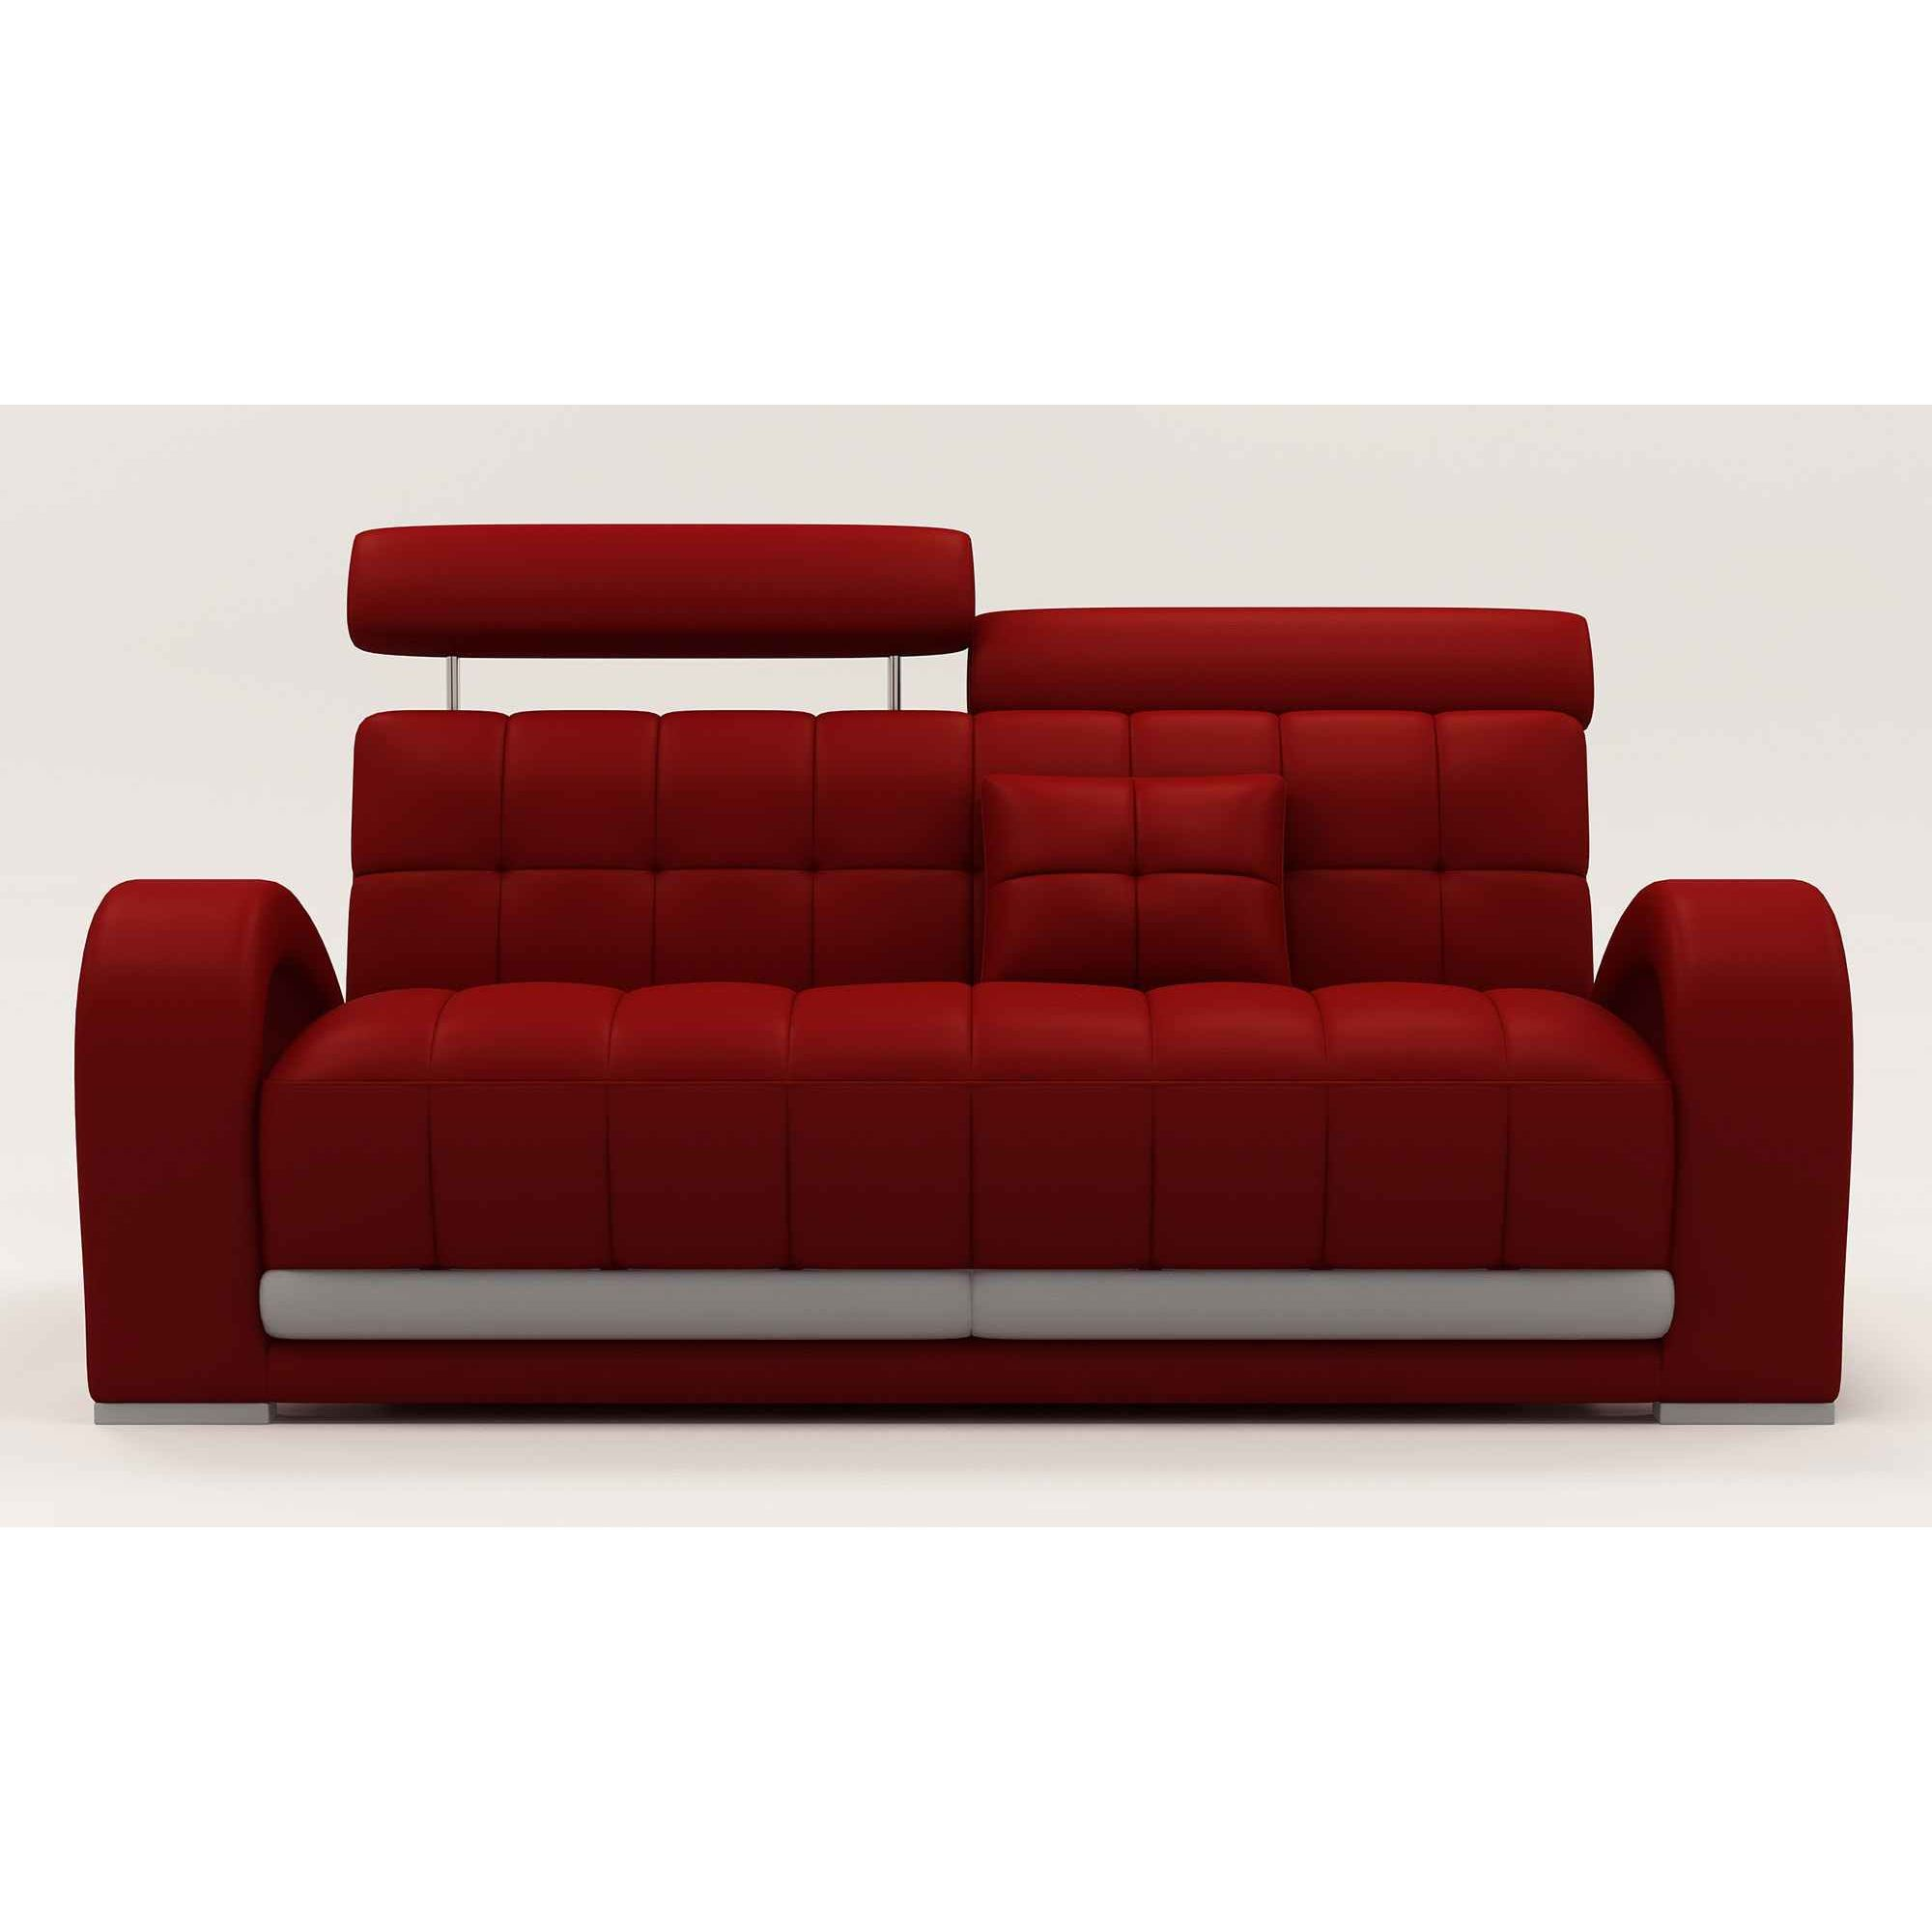 Deco in paris canape cuir rouge 3 places verdi can verdi 3p pu rouge - Canape rouge 3 places ...